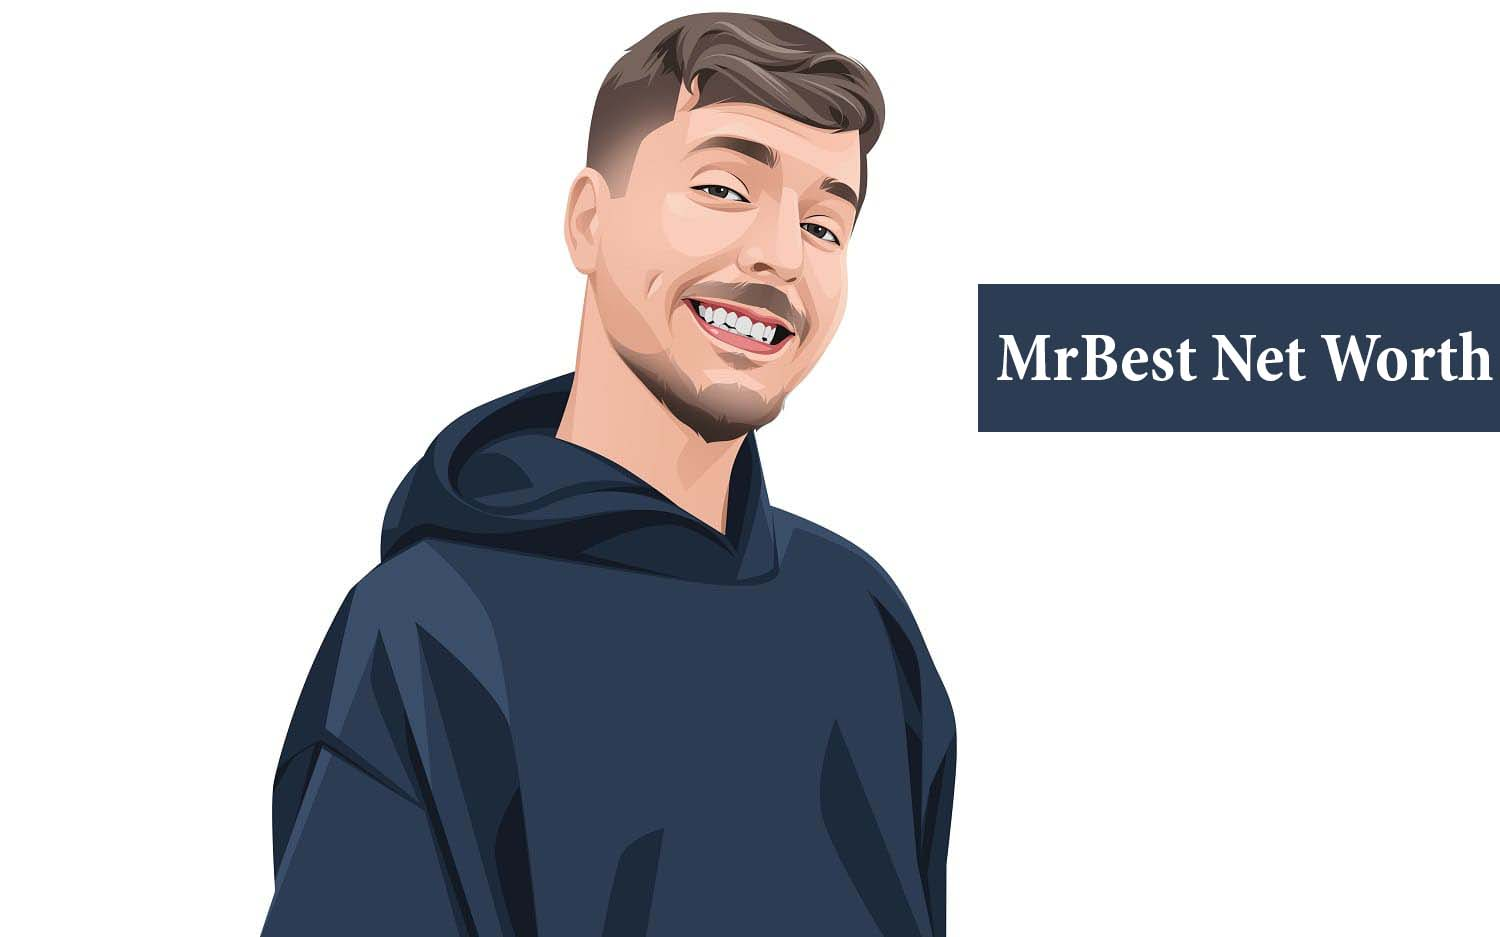 MrBest Net Worth